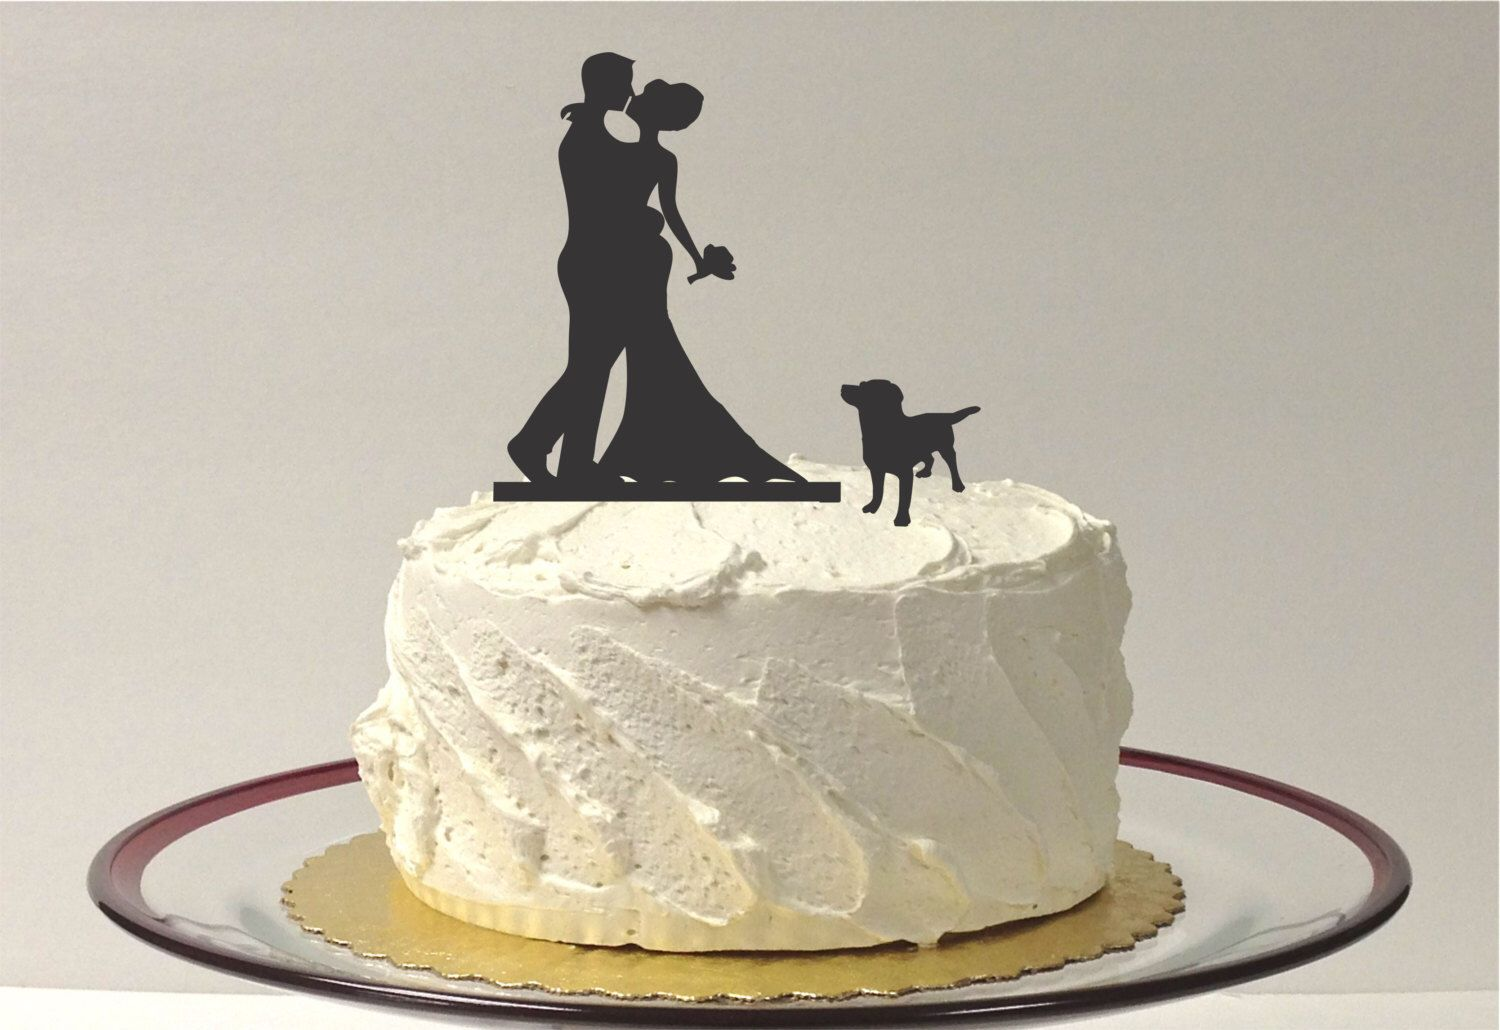 Wedding cake topper with dog choice silhouette wedding cake topper